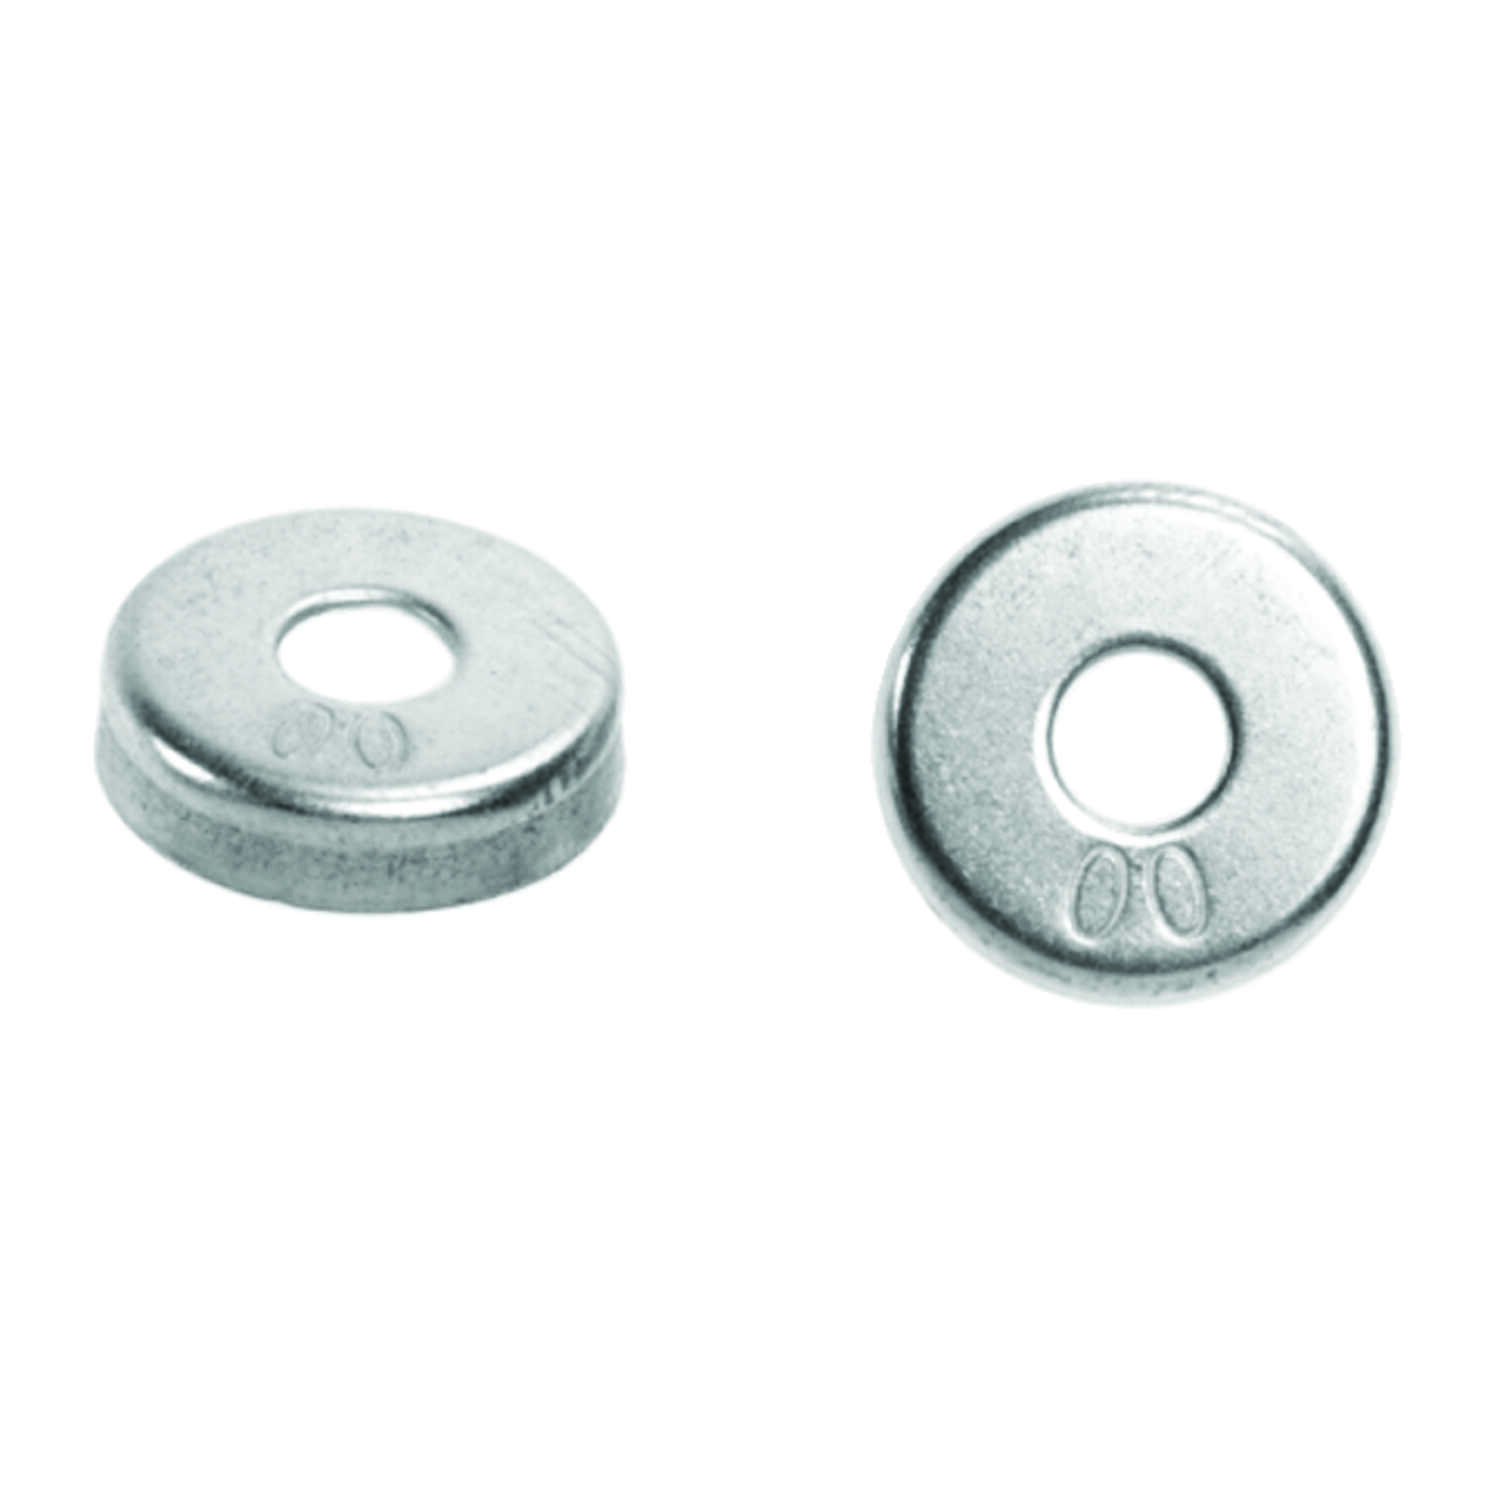 Danco  1/2 in. Dia. Stainless Steel  Washer Retainer  1 pk